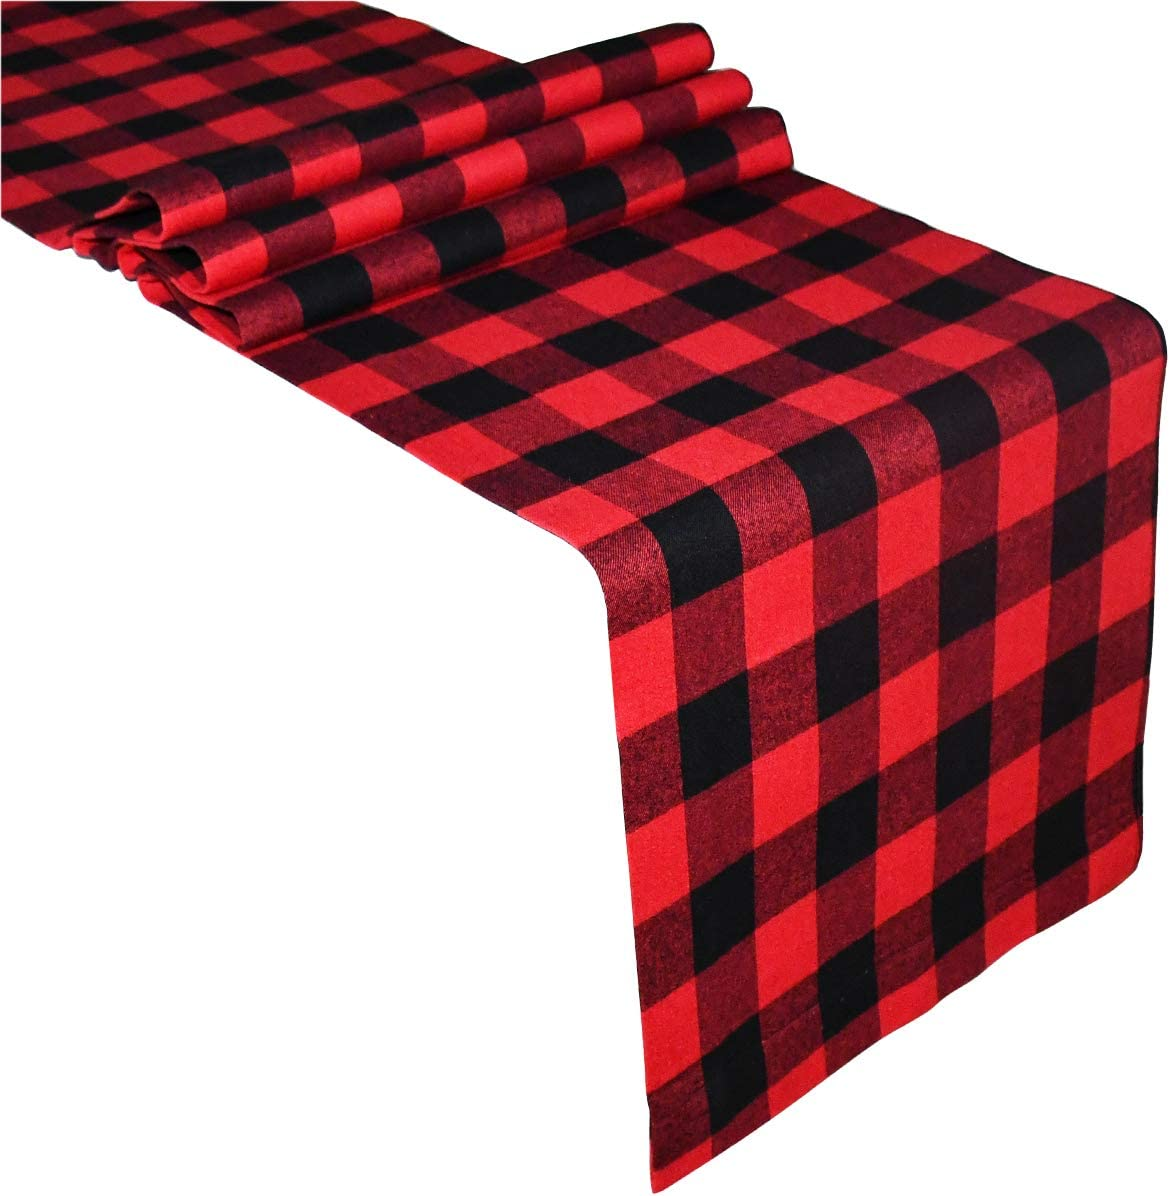 Senneny Buffalo Check Table Runner Cotton Red and Black Plaid Classic Stylish Design for Family Dinner Christmas Holiday Birthday Party Table Home Decoration, 14 x 108 Inch